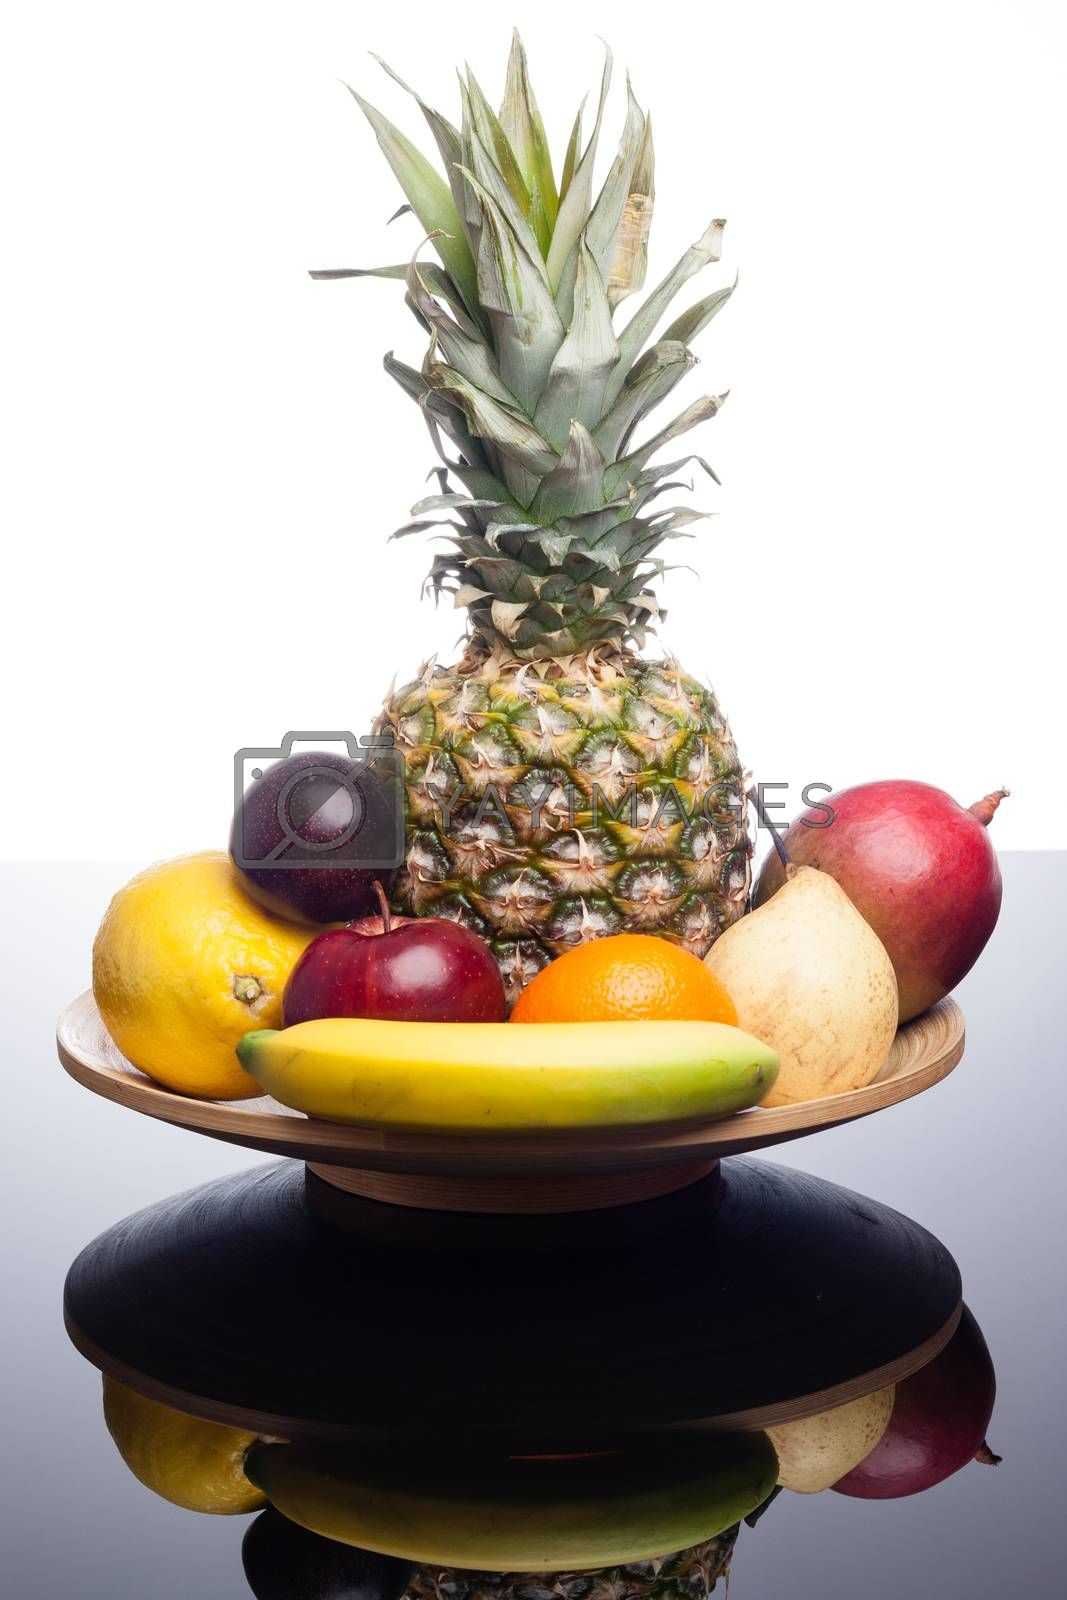 Royalty free image of exotic fruits by furo_felix